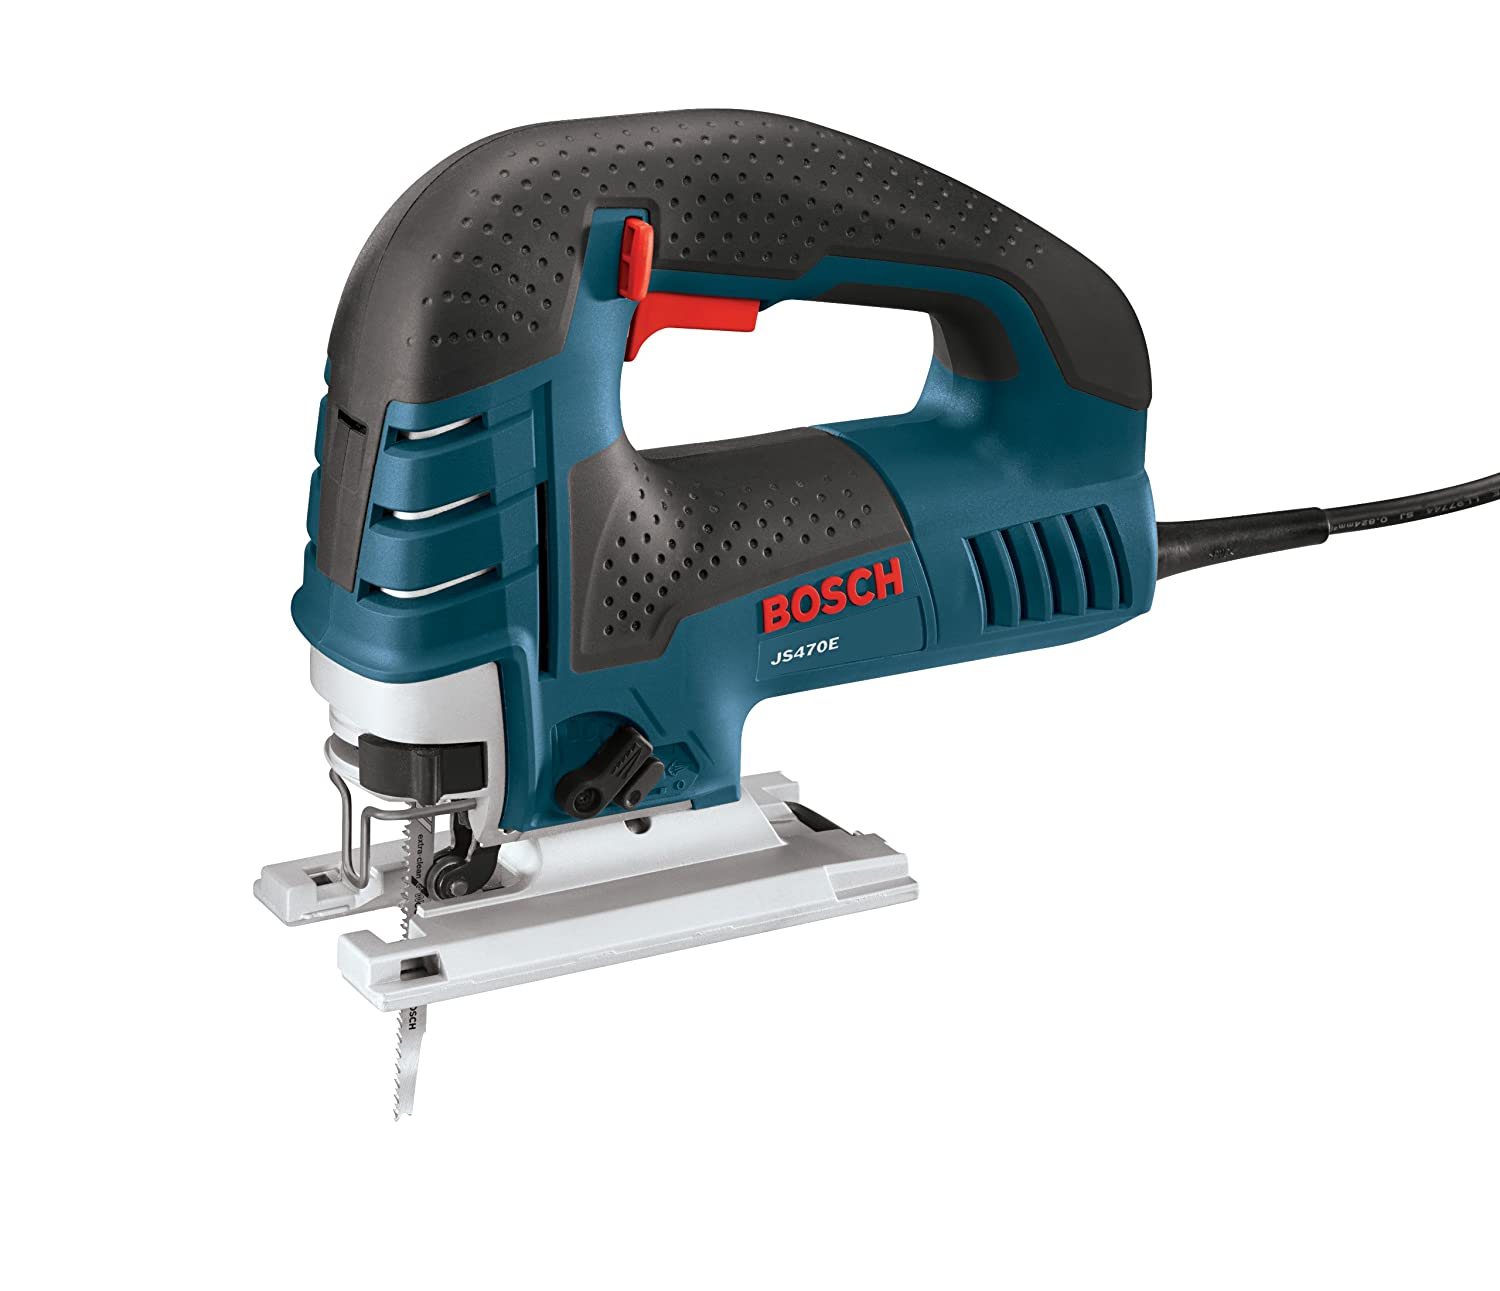 Bosch JS470E best corded chainsaw